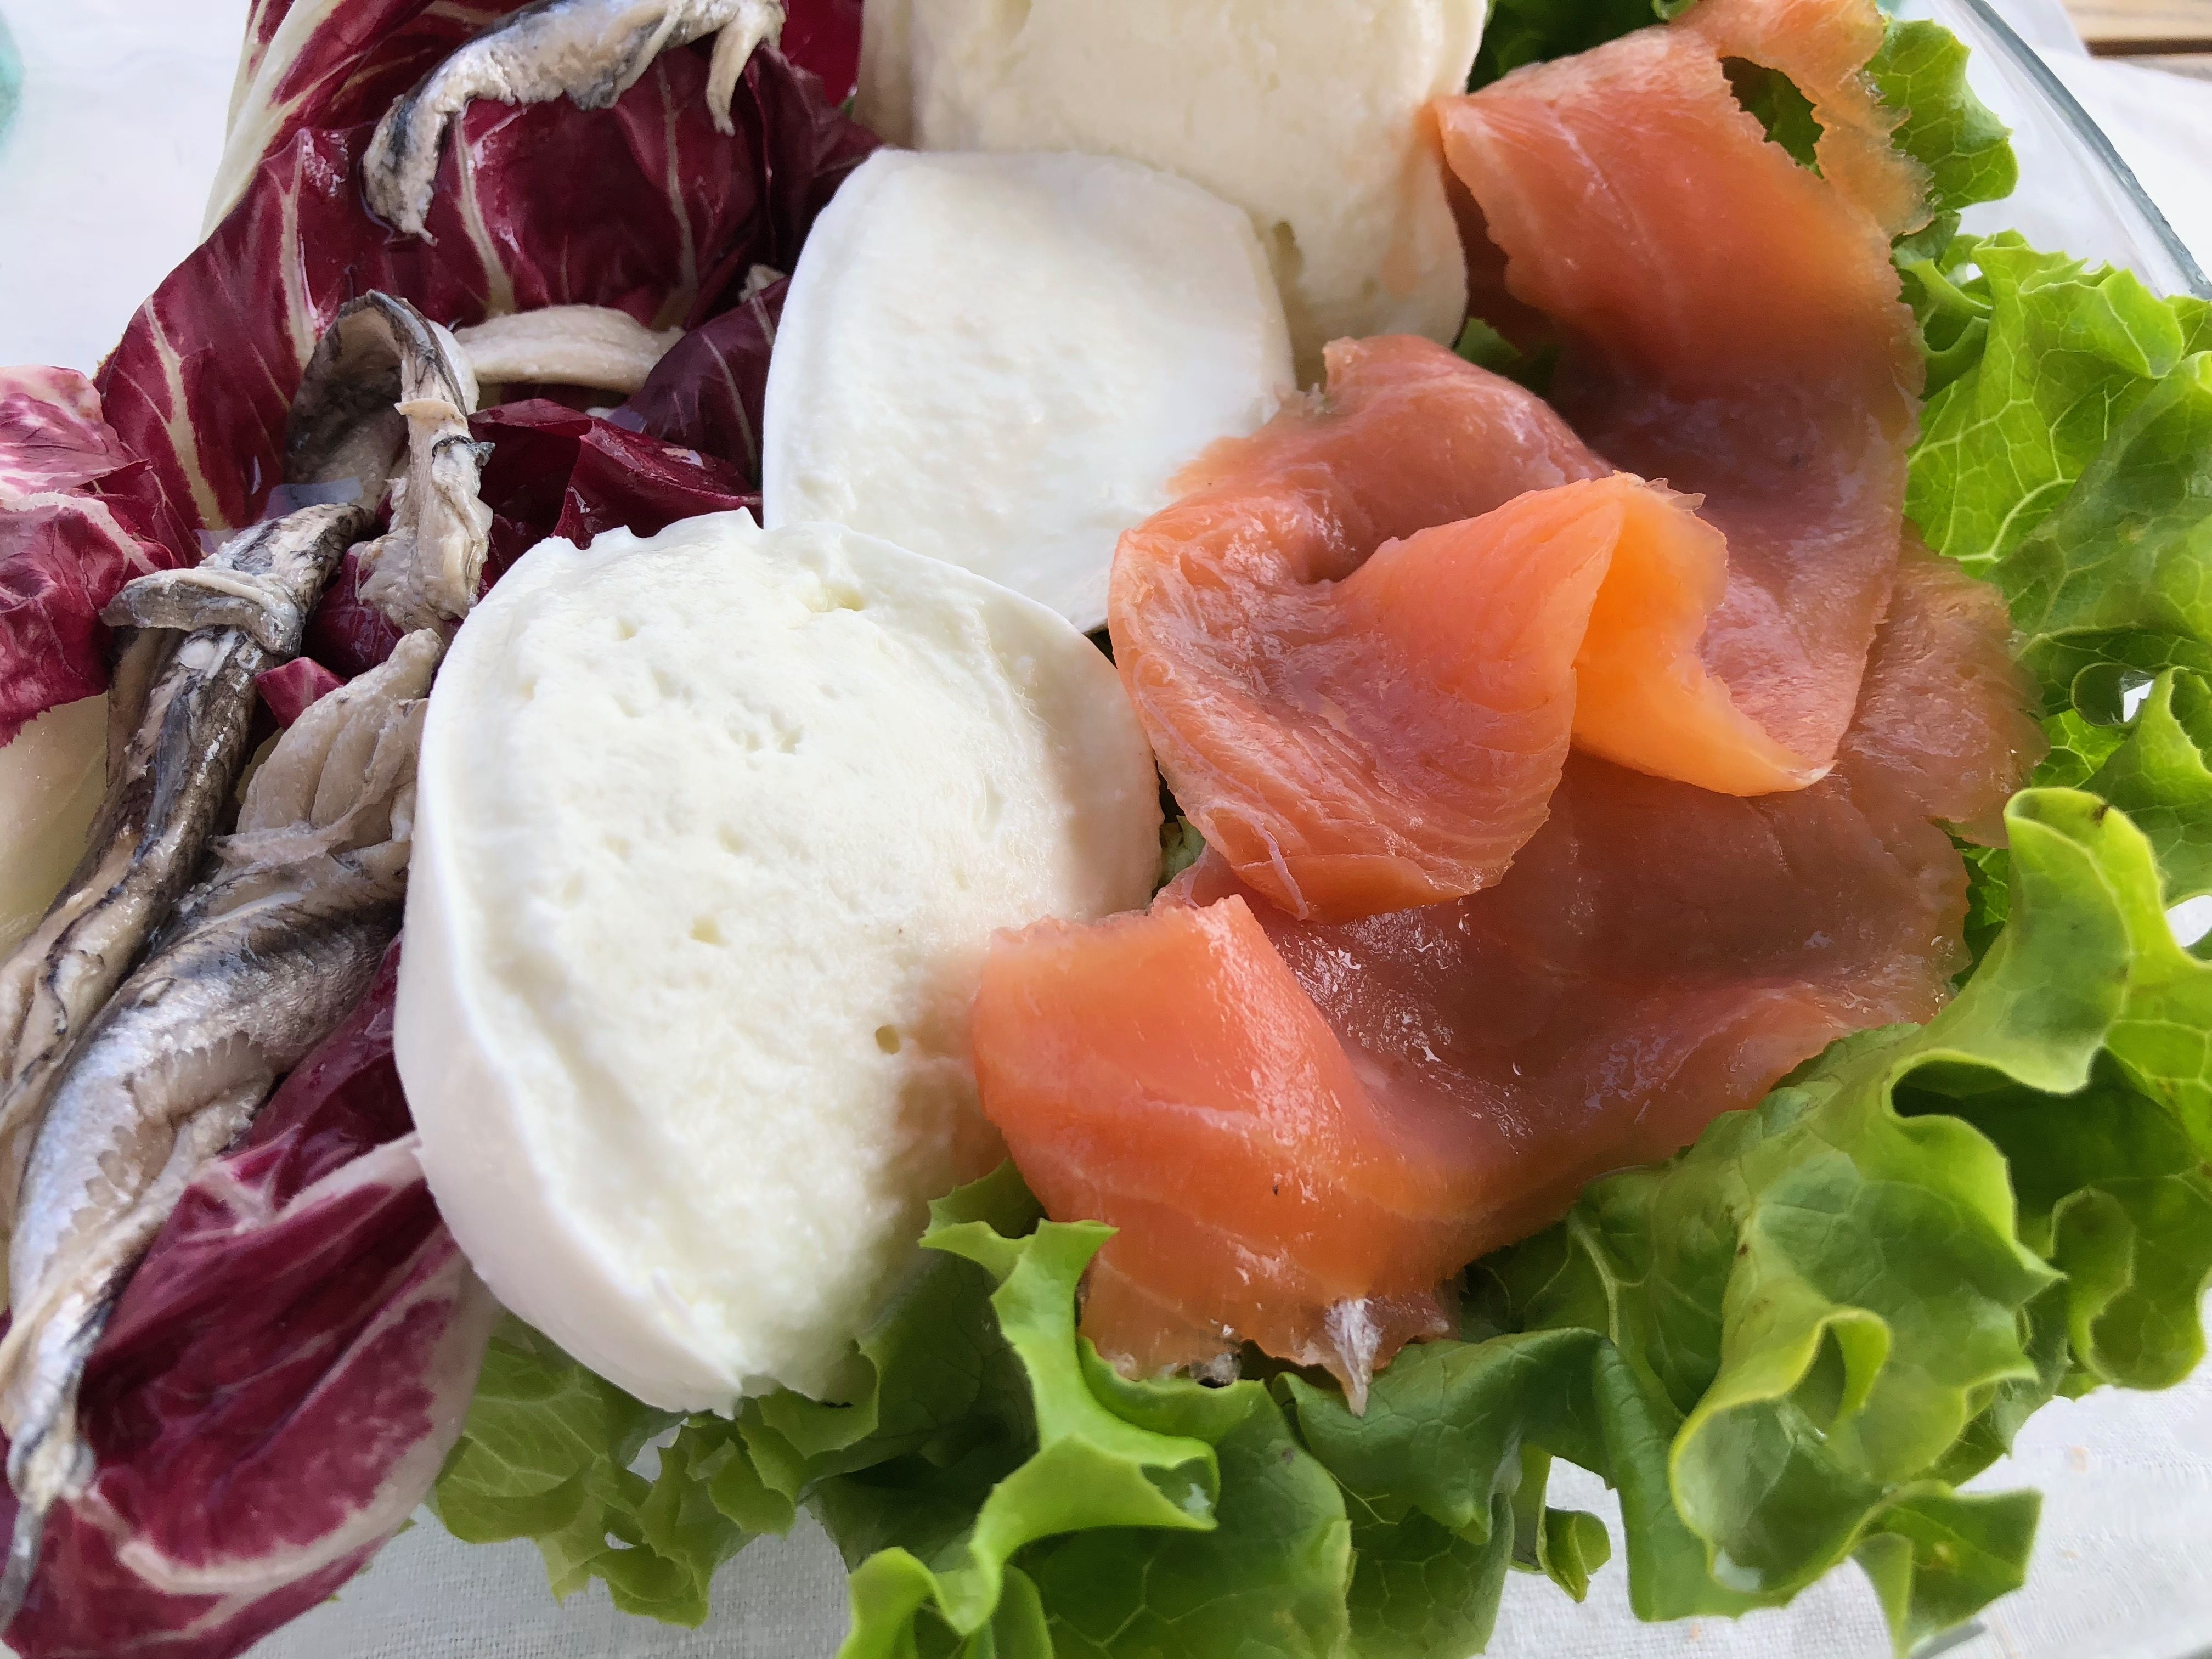 Come Cucinare Le Alici Marinate Insalata Mista Con Salmone Affumicato Mozzarella E Alici